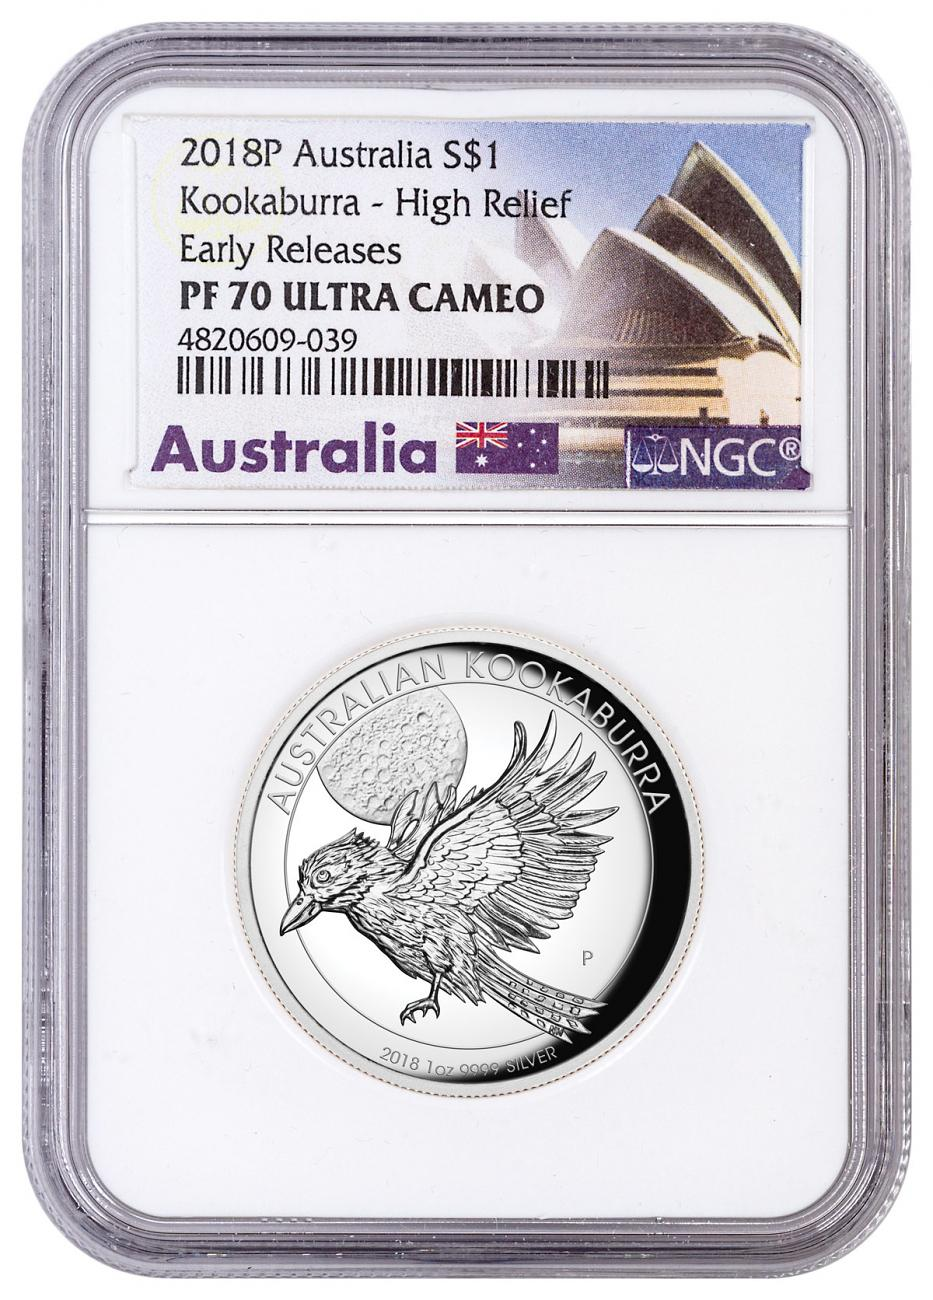 2018-P Australia 1 oz High Relief Silver Kookaburra Proof $1 Coin NGC PF70 UC ER Australia Label